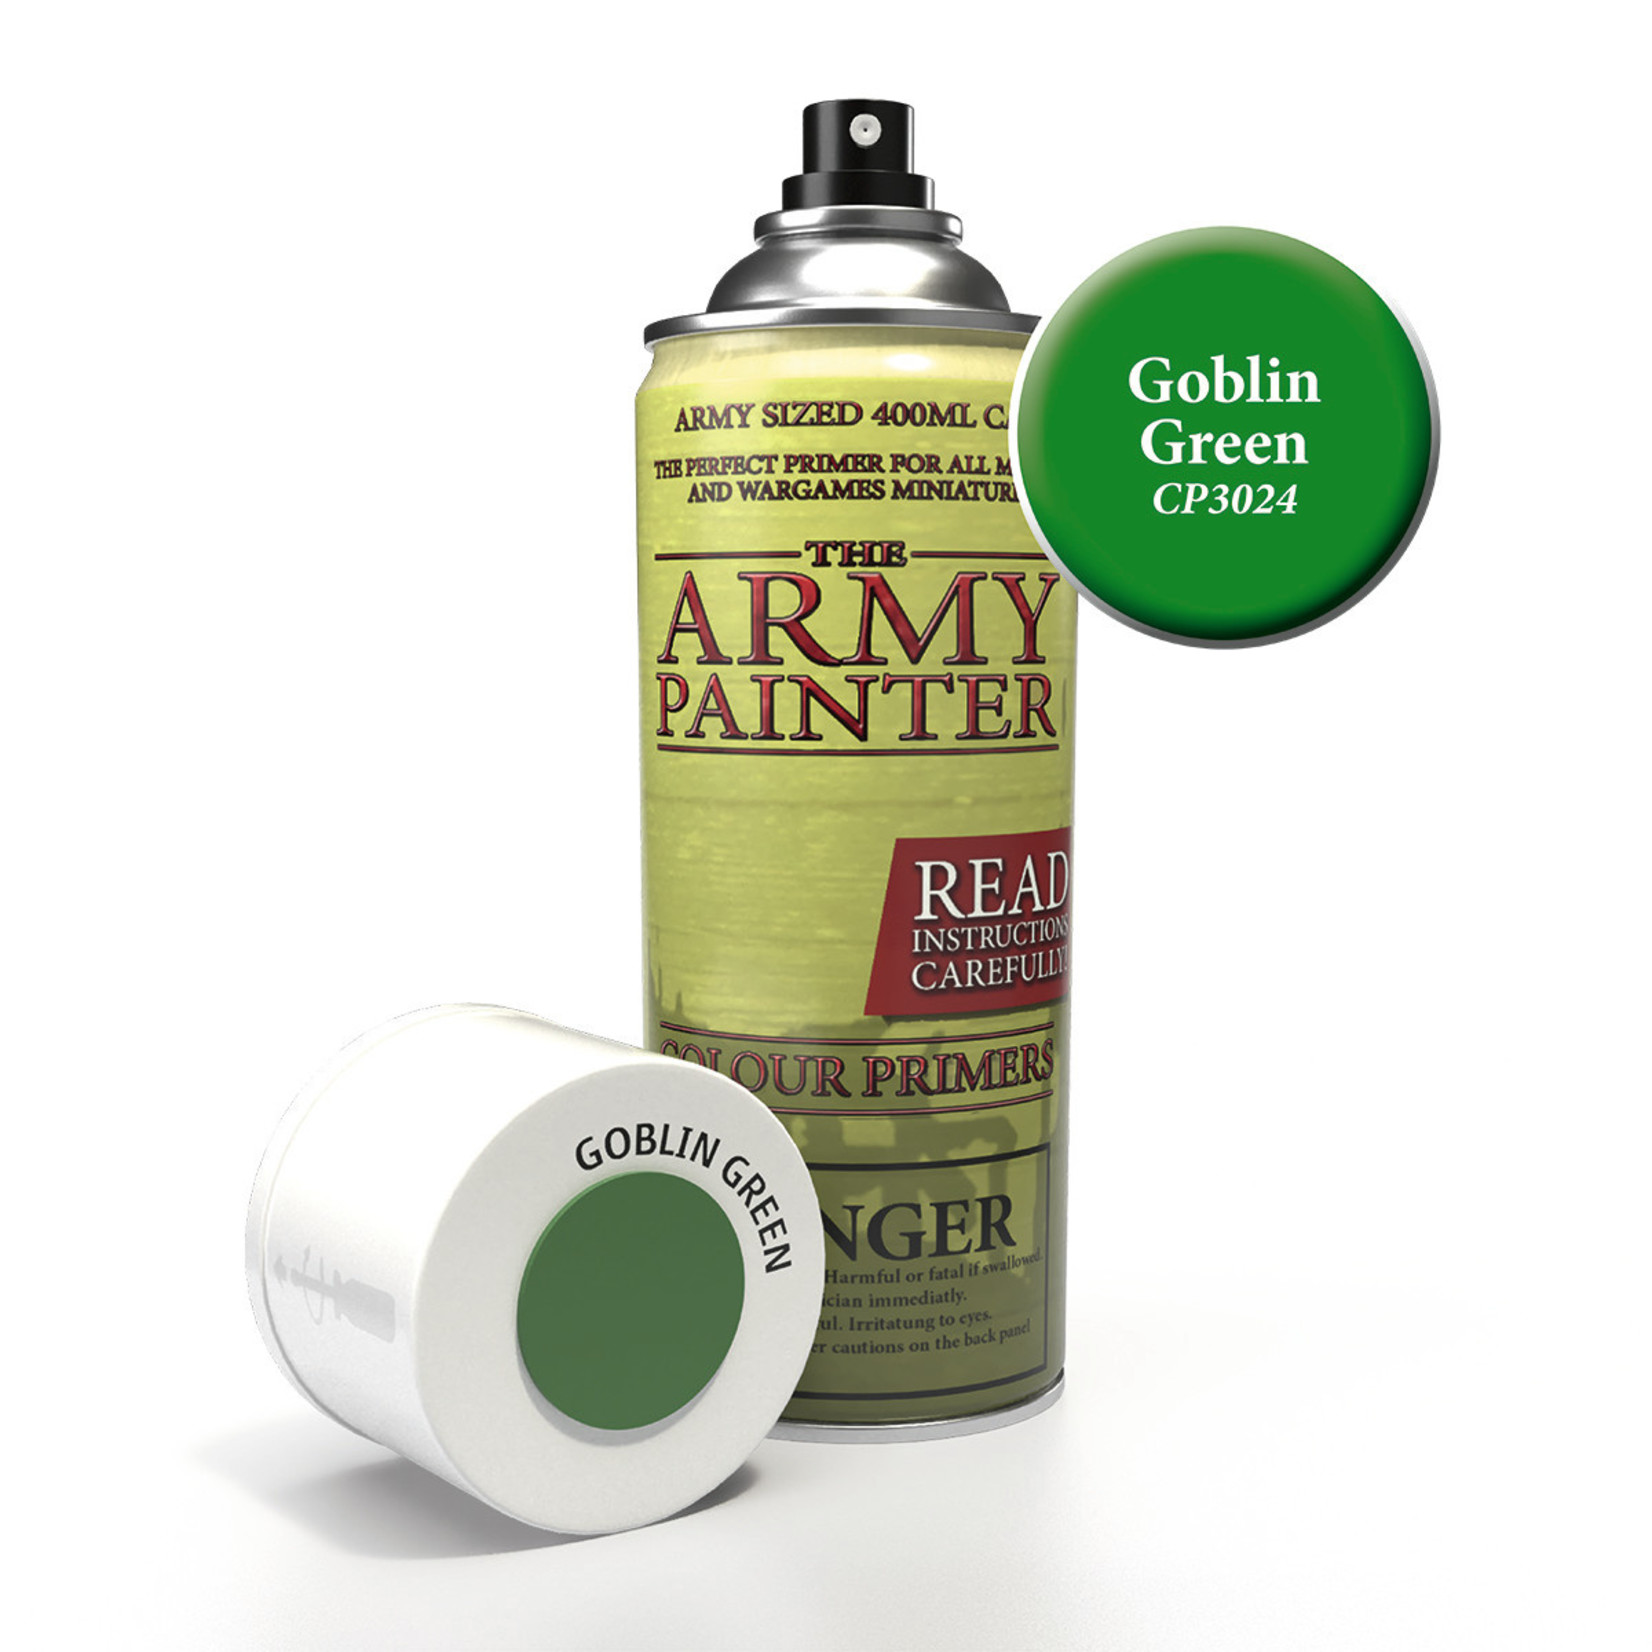 The Army Painter Color Primer Goblin Green